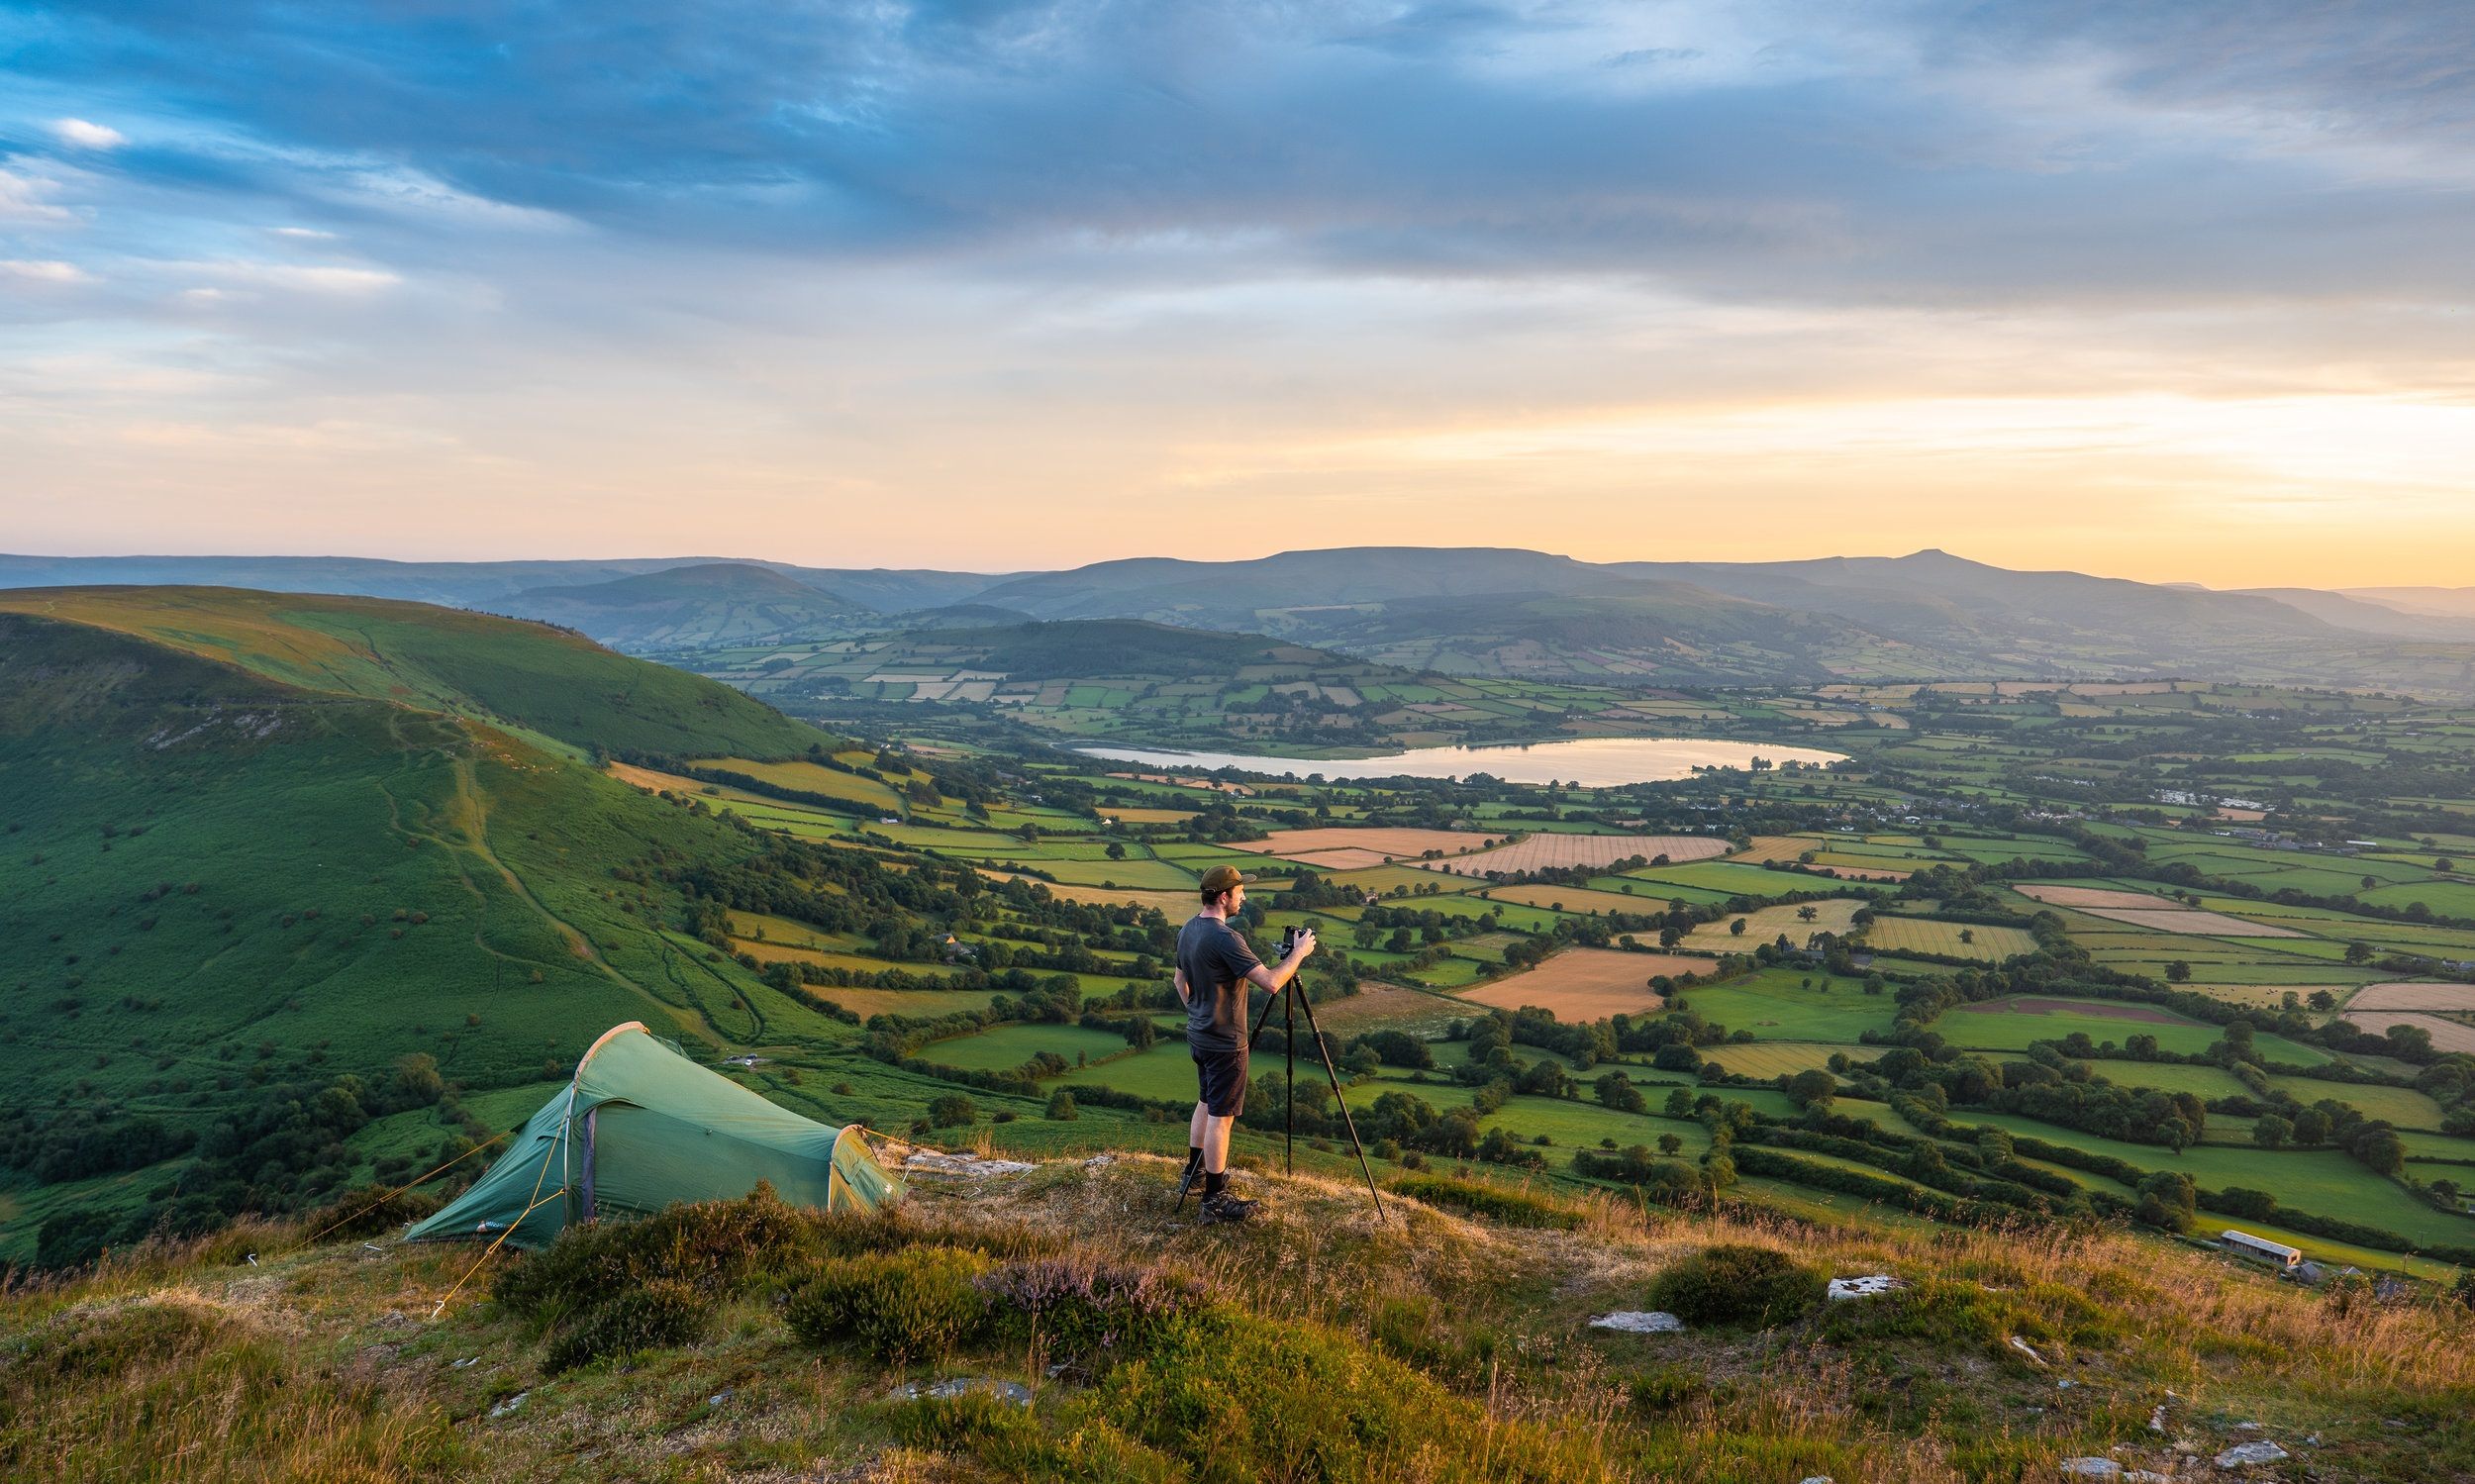 Capturing the evening light at one of my favourite views of the Brecon Beacons, Wales.